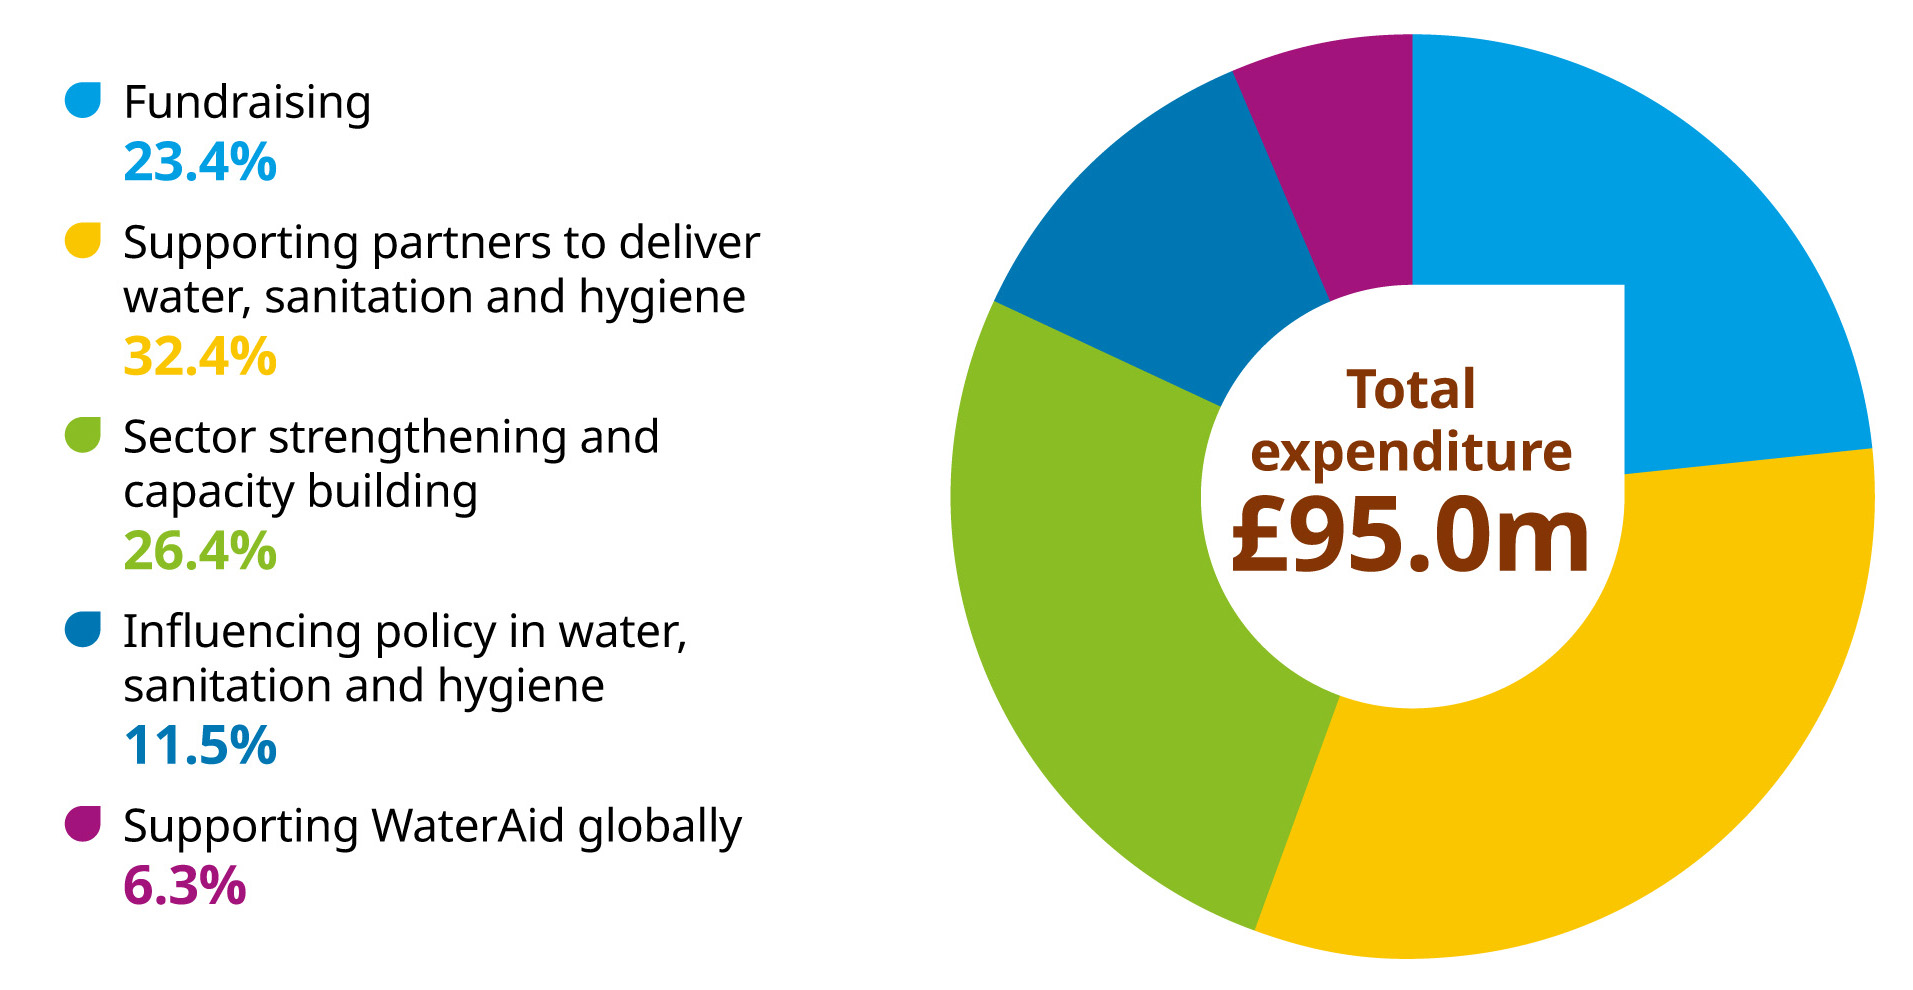 Graphic showing expenditure was £95 million